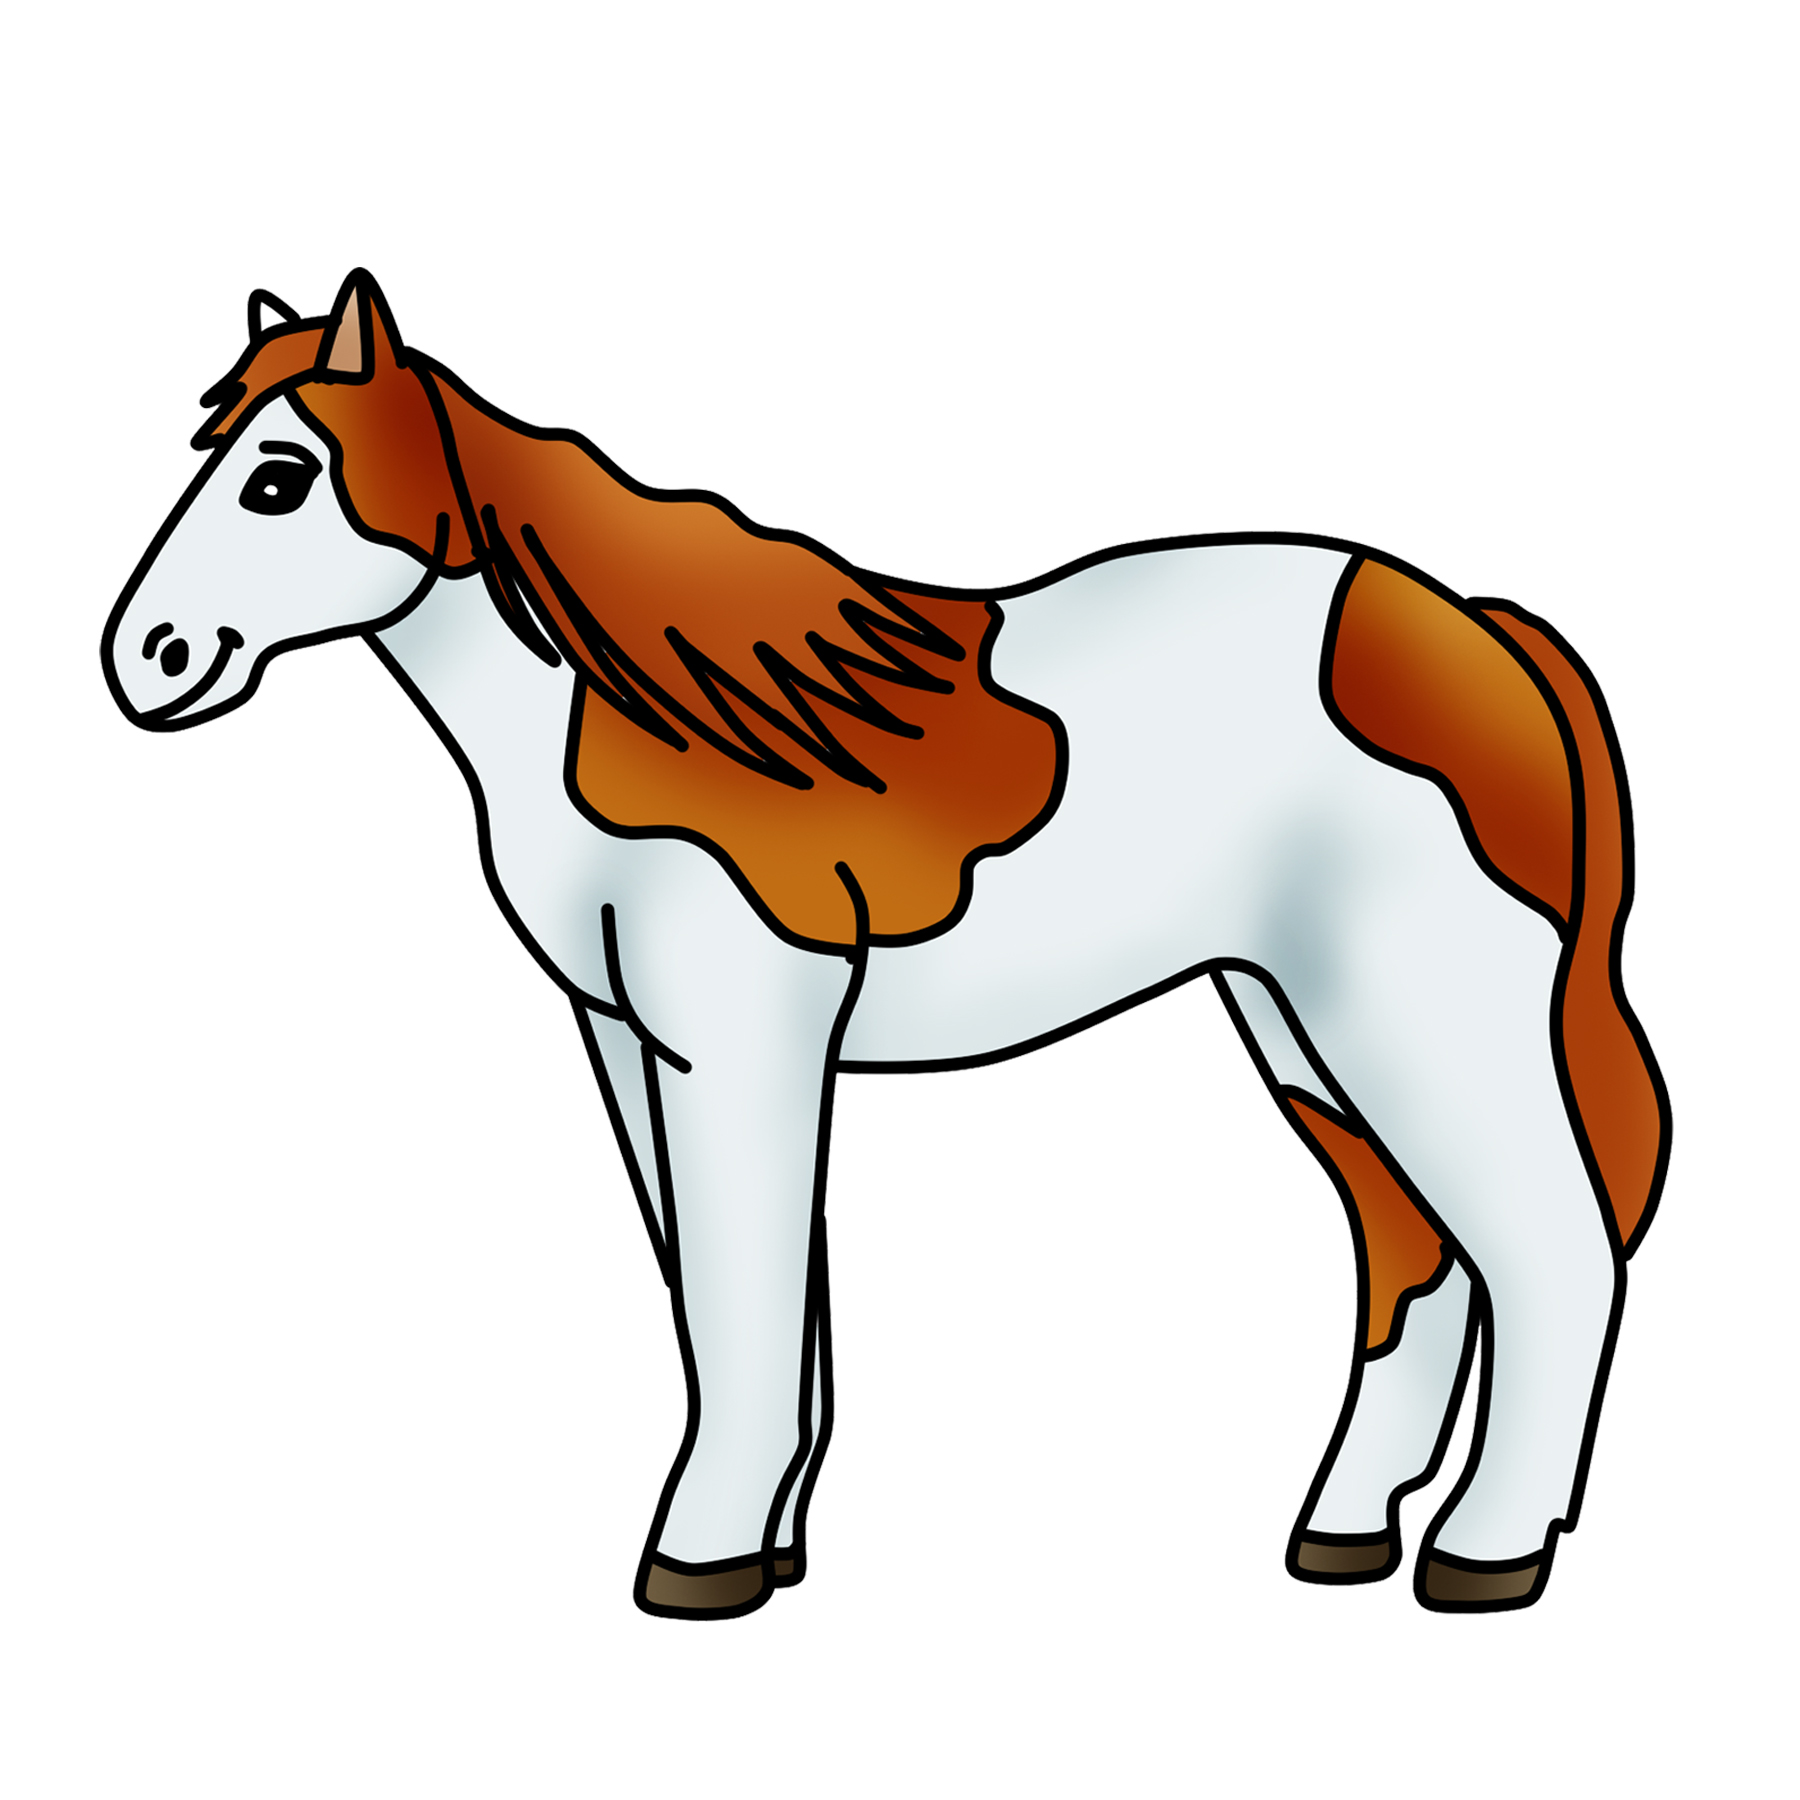 1800x1800 Endearing Free Horse Clipart 7 Vector Black And White Clip Art